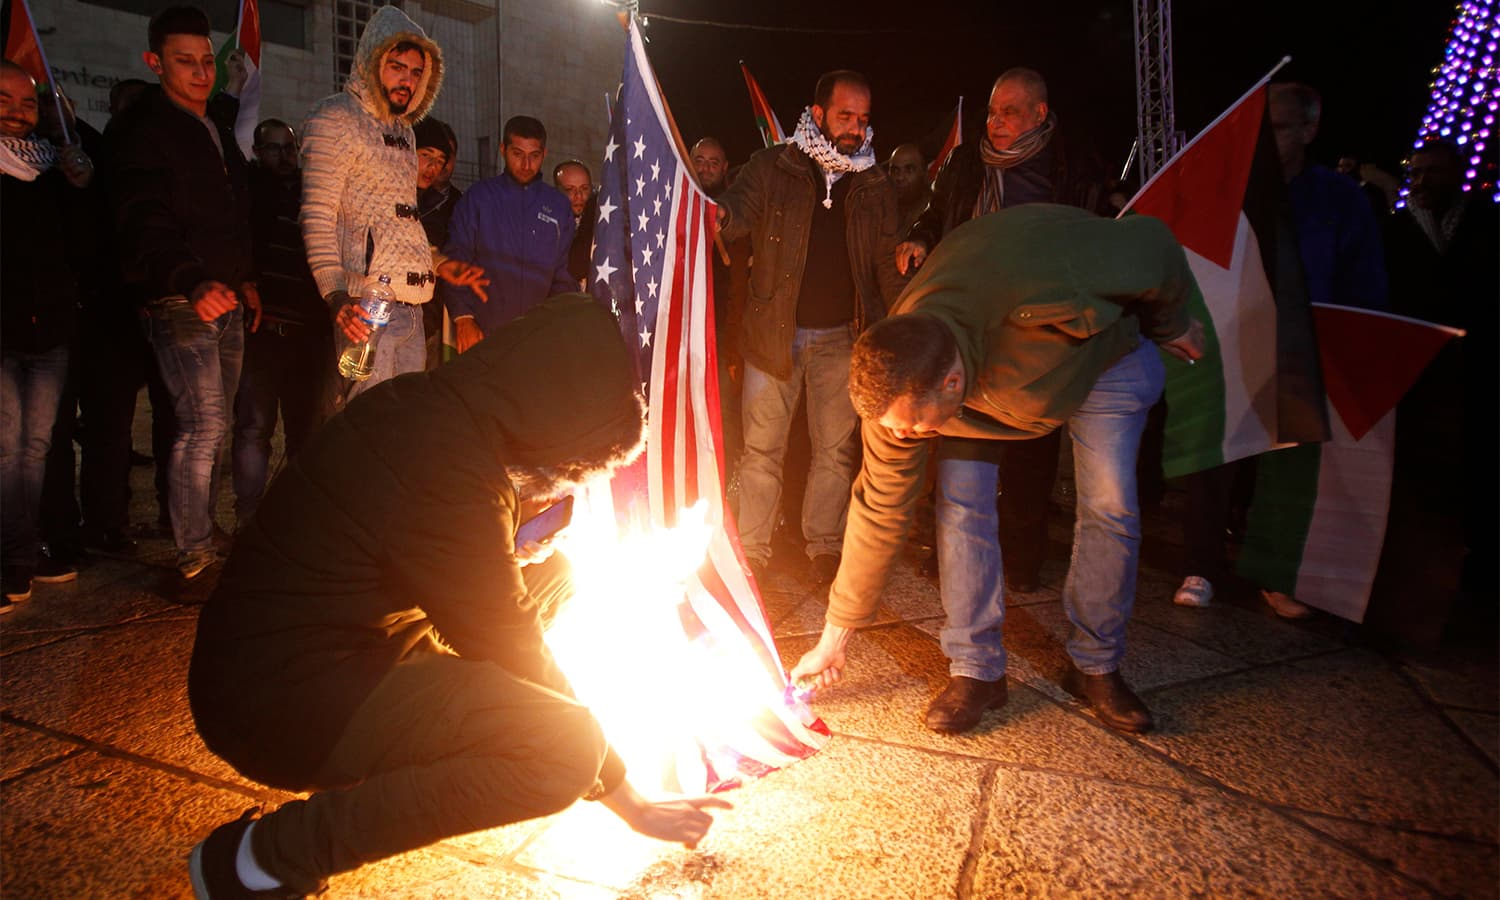 Palestinian demonstrators burn the US flag in Bethlehem's Manger Square in protest.— AFP